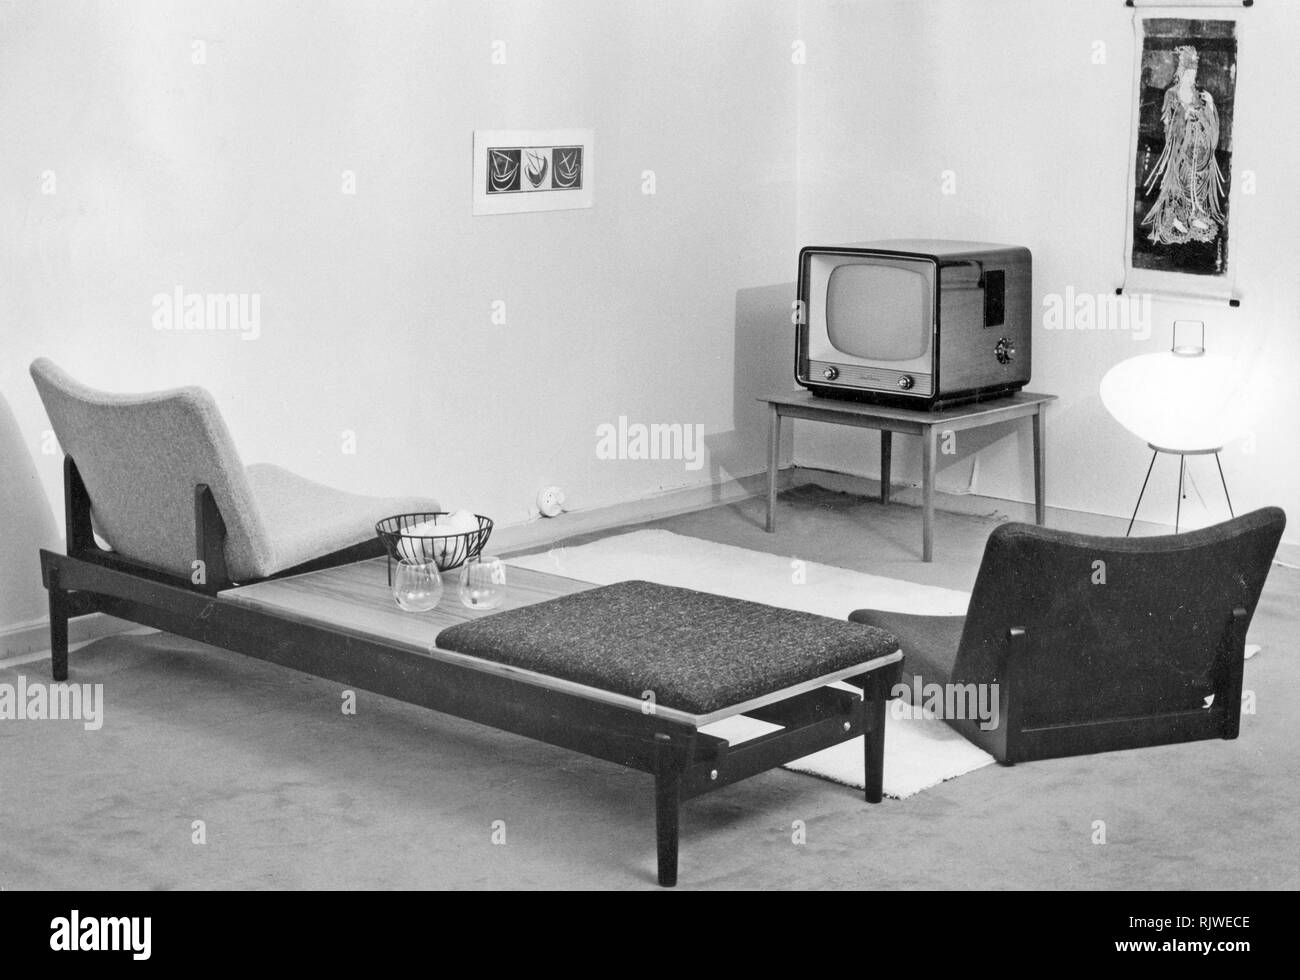 Television In The 1950s A Tv Set On A Small Table In A Room In Home